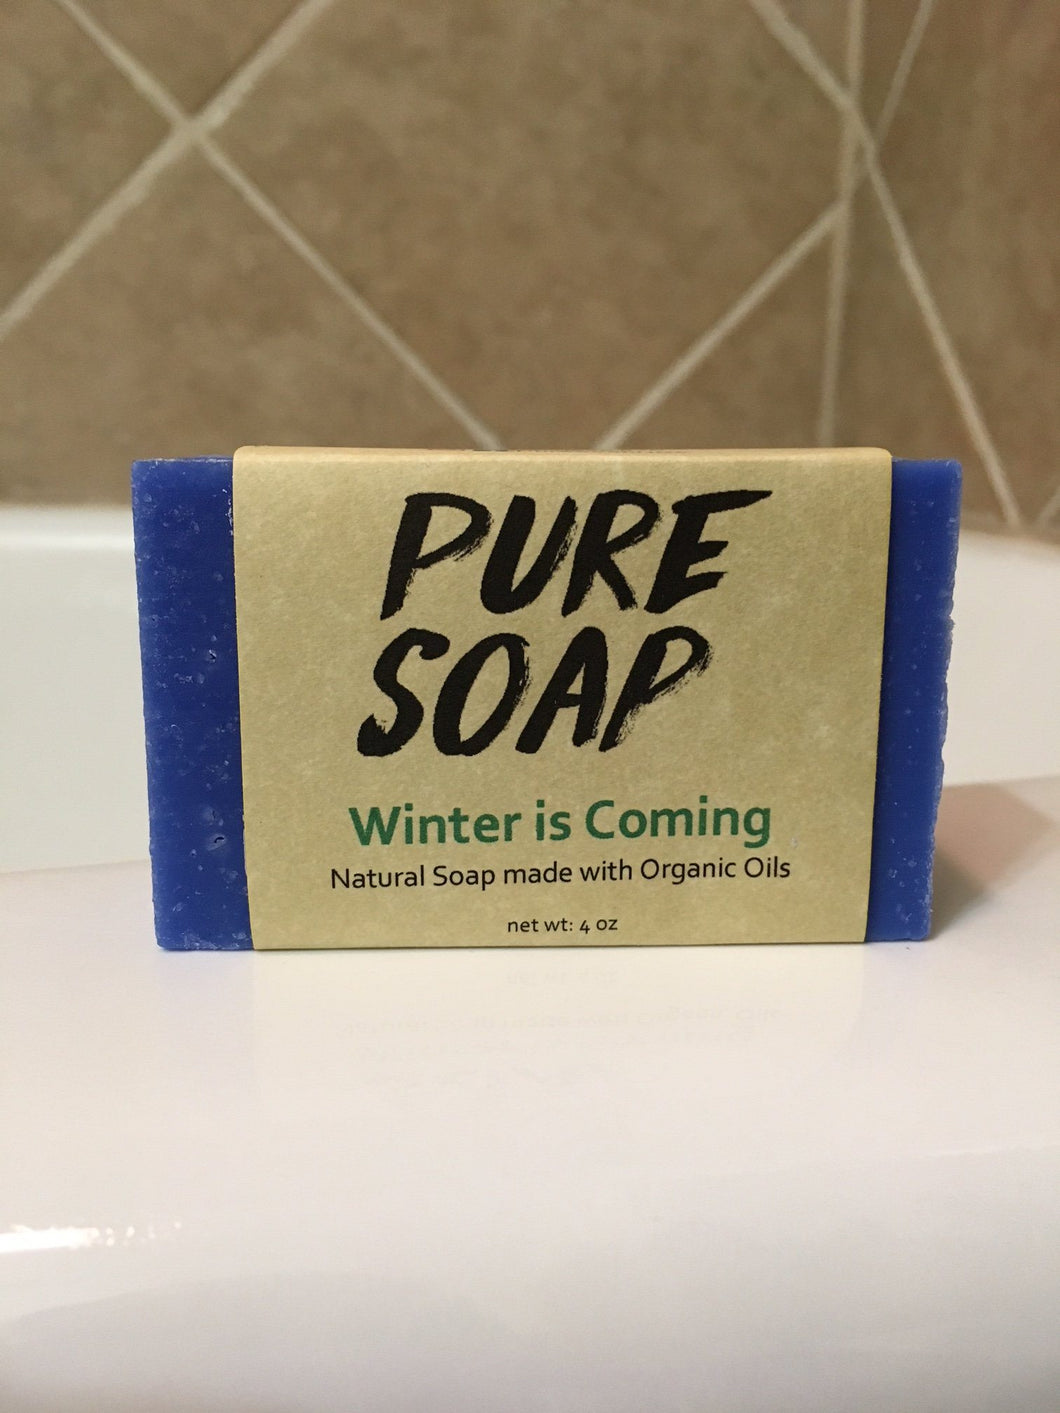 tea tree peppermint natural organic winter is coming bar soap